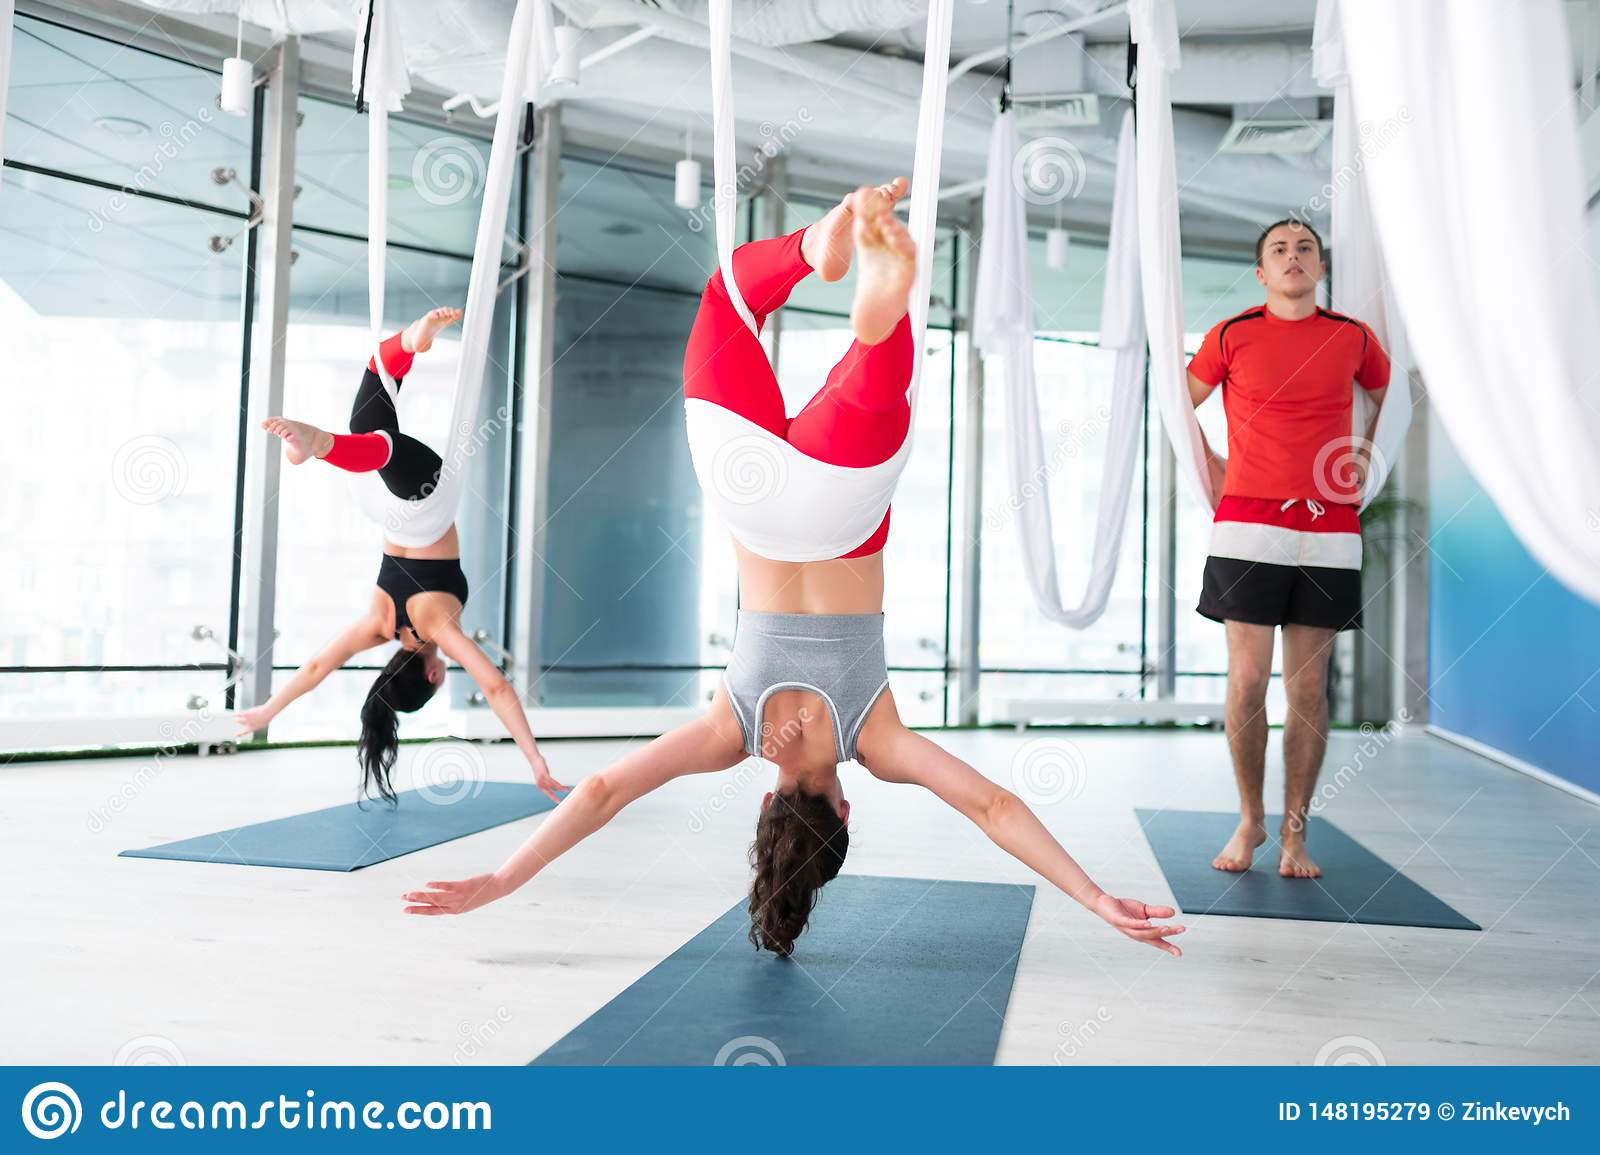 Man Standing Near Friends Practicing Aerial Yoga Poses ...